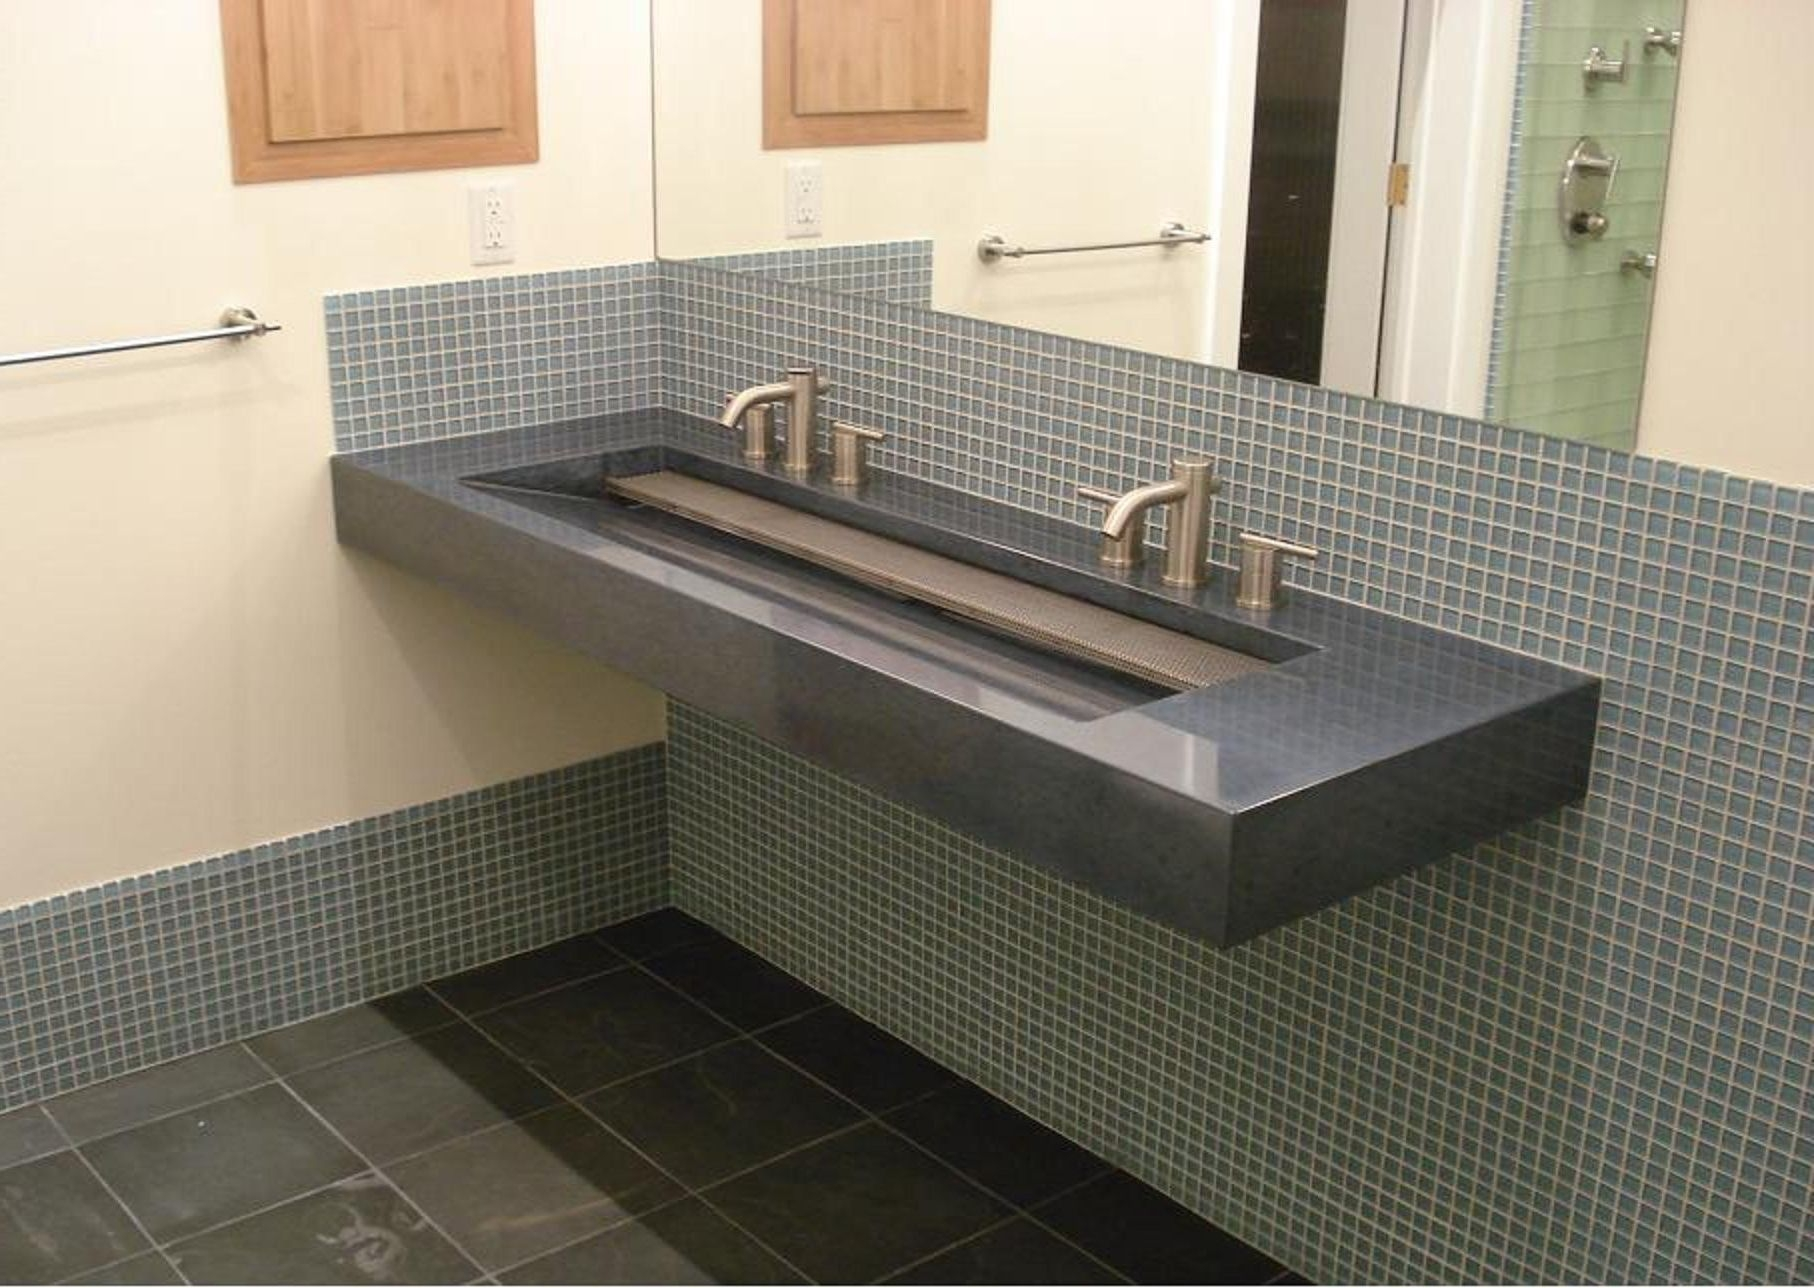 Ideas, double faucet trough sink vanity double faucet trough sink vanity bathroom fabulous trough sink for bathroom and kitchen 1814 x 1288  .